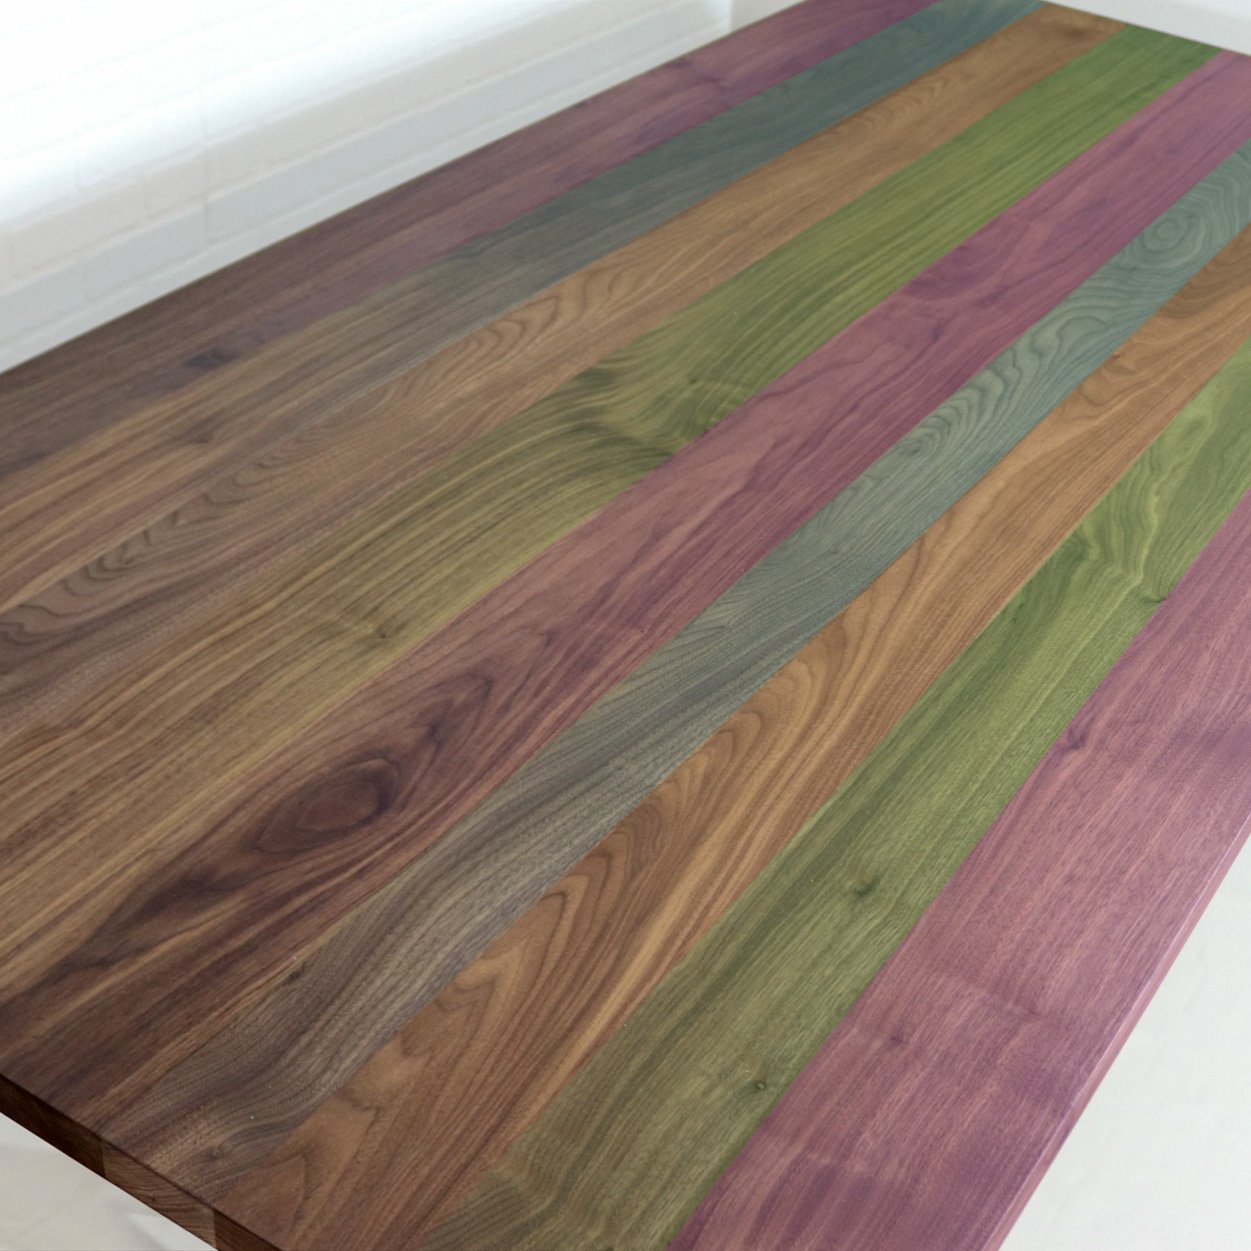 Why We Build Multi-Plank Table Tops